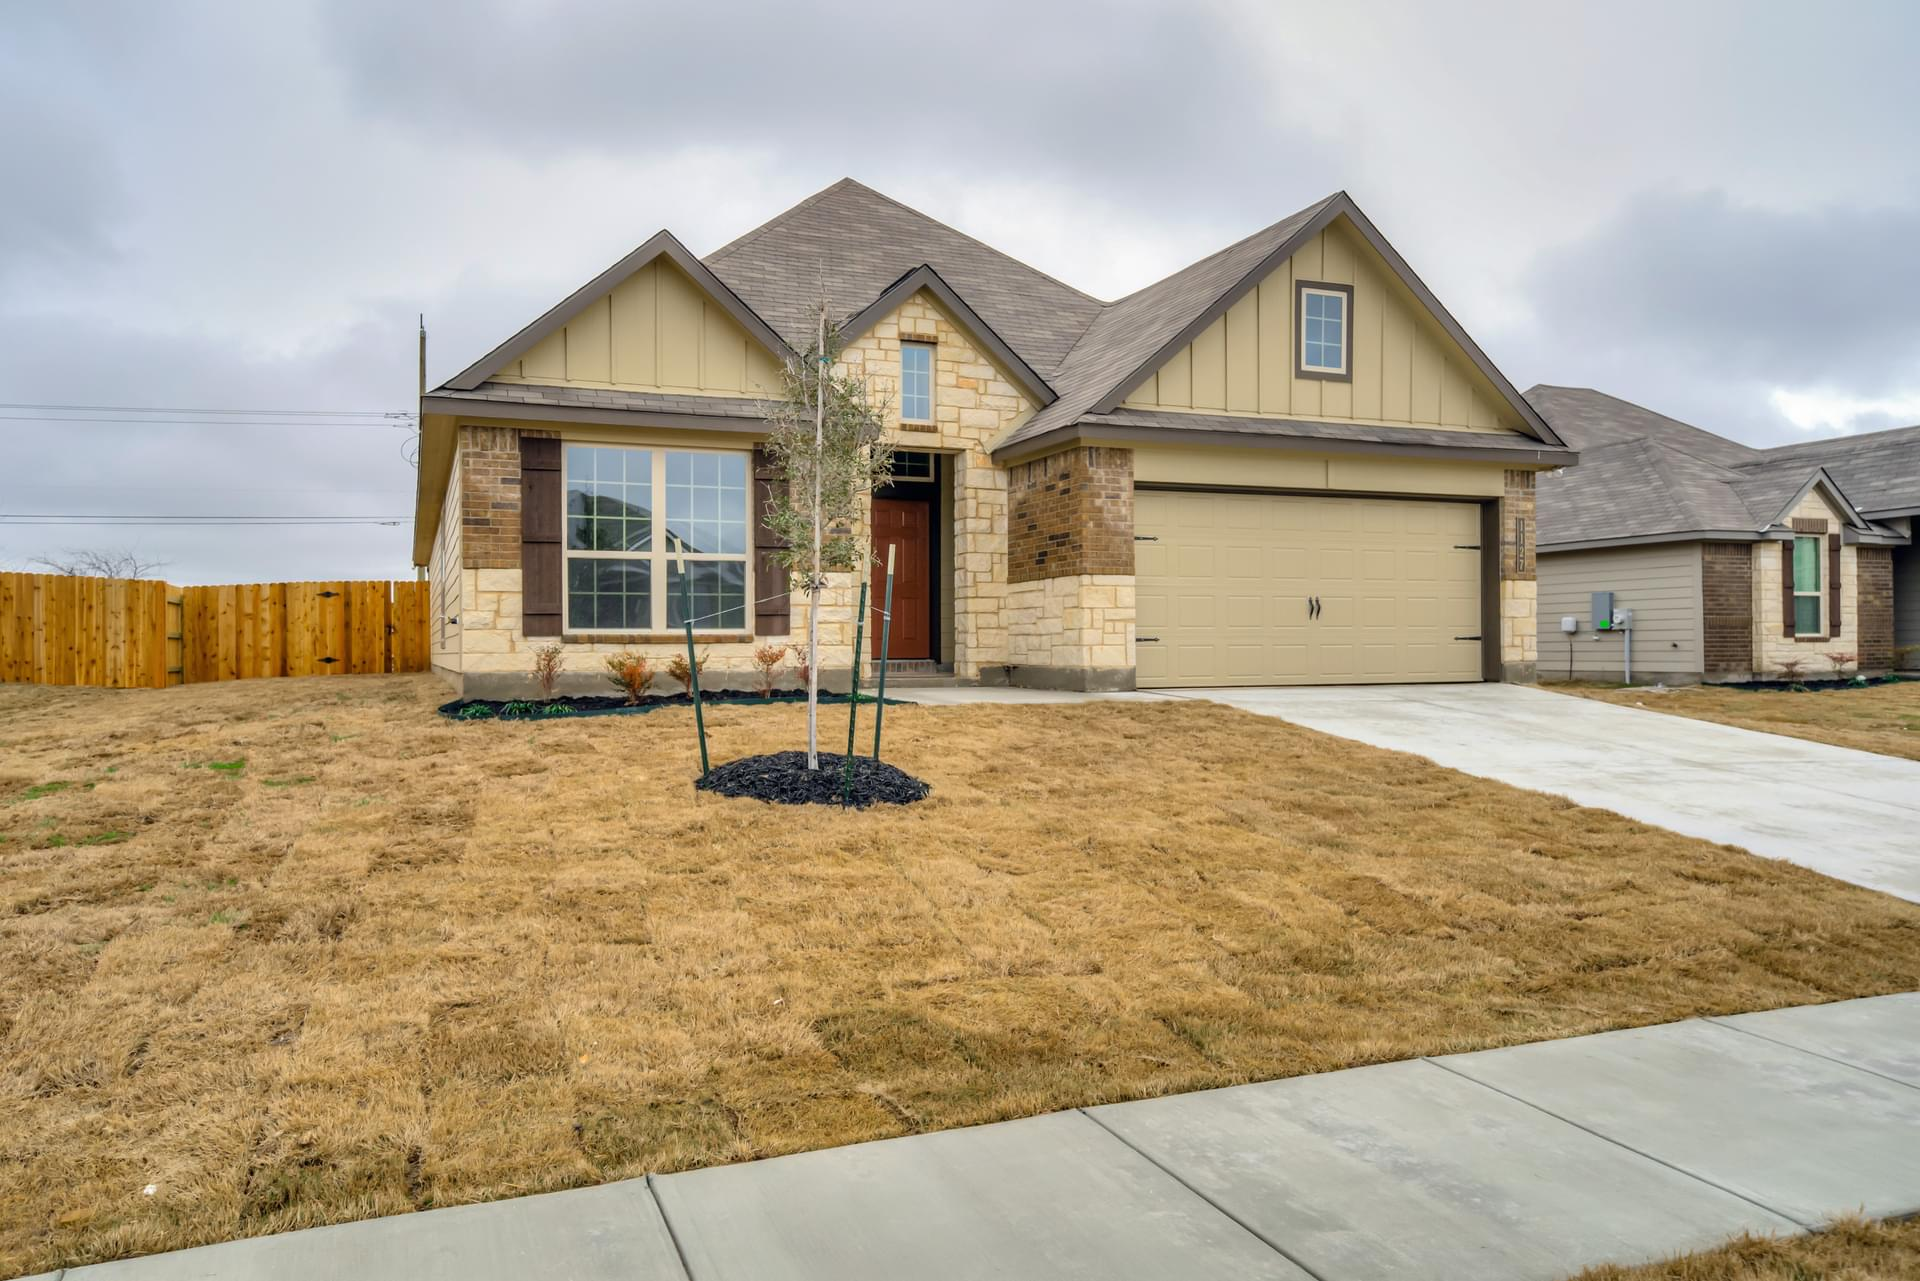 1127 Lilac Ledge Drive in Temple, TX